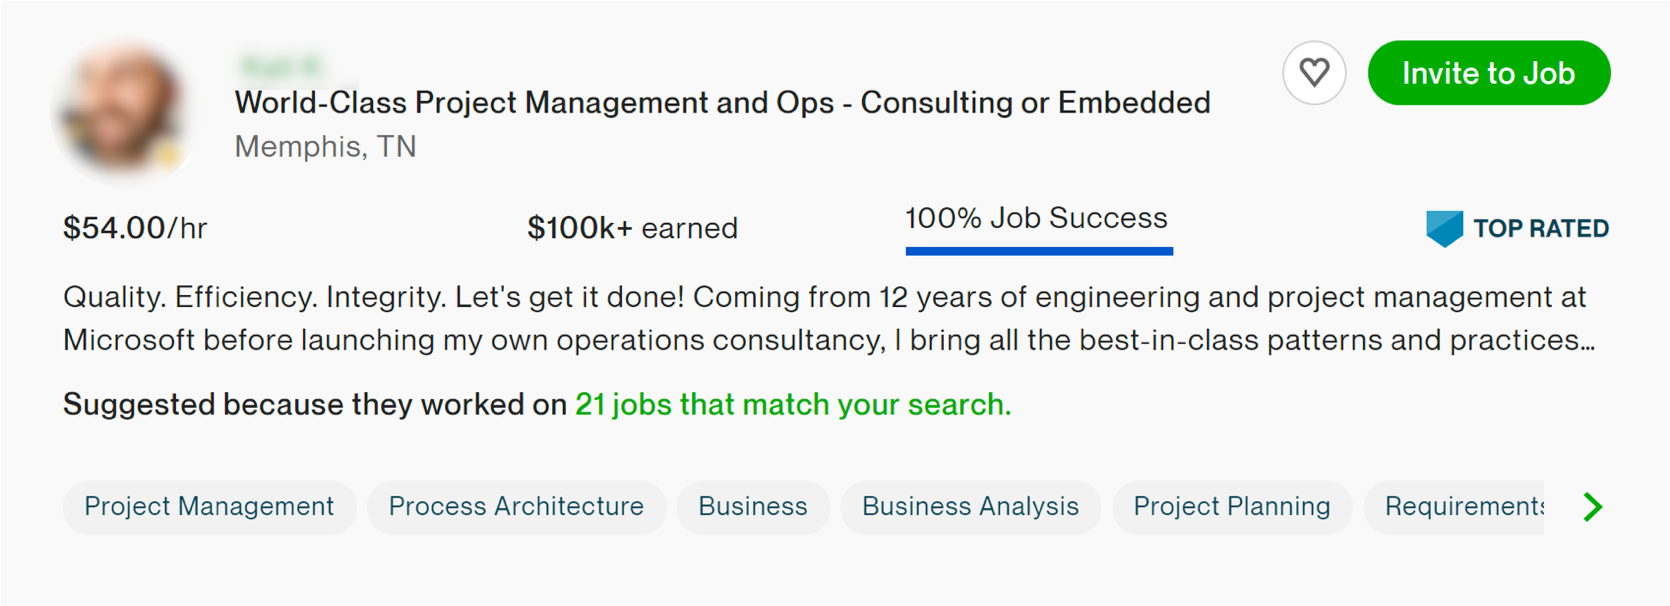 Upwork profile for a Project Manager who charges $54 per hour.